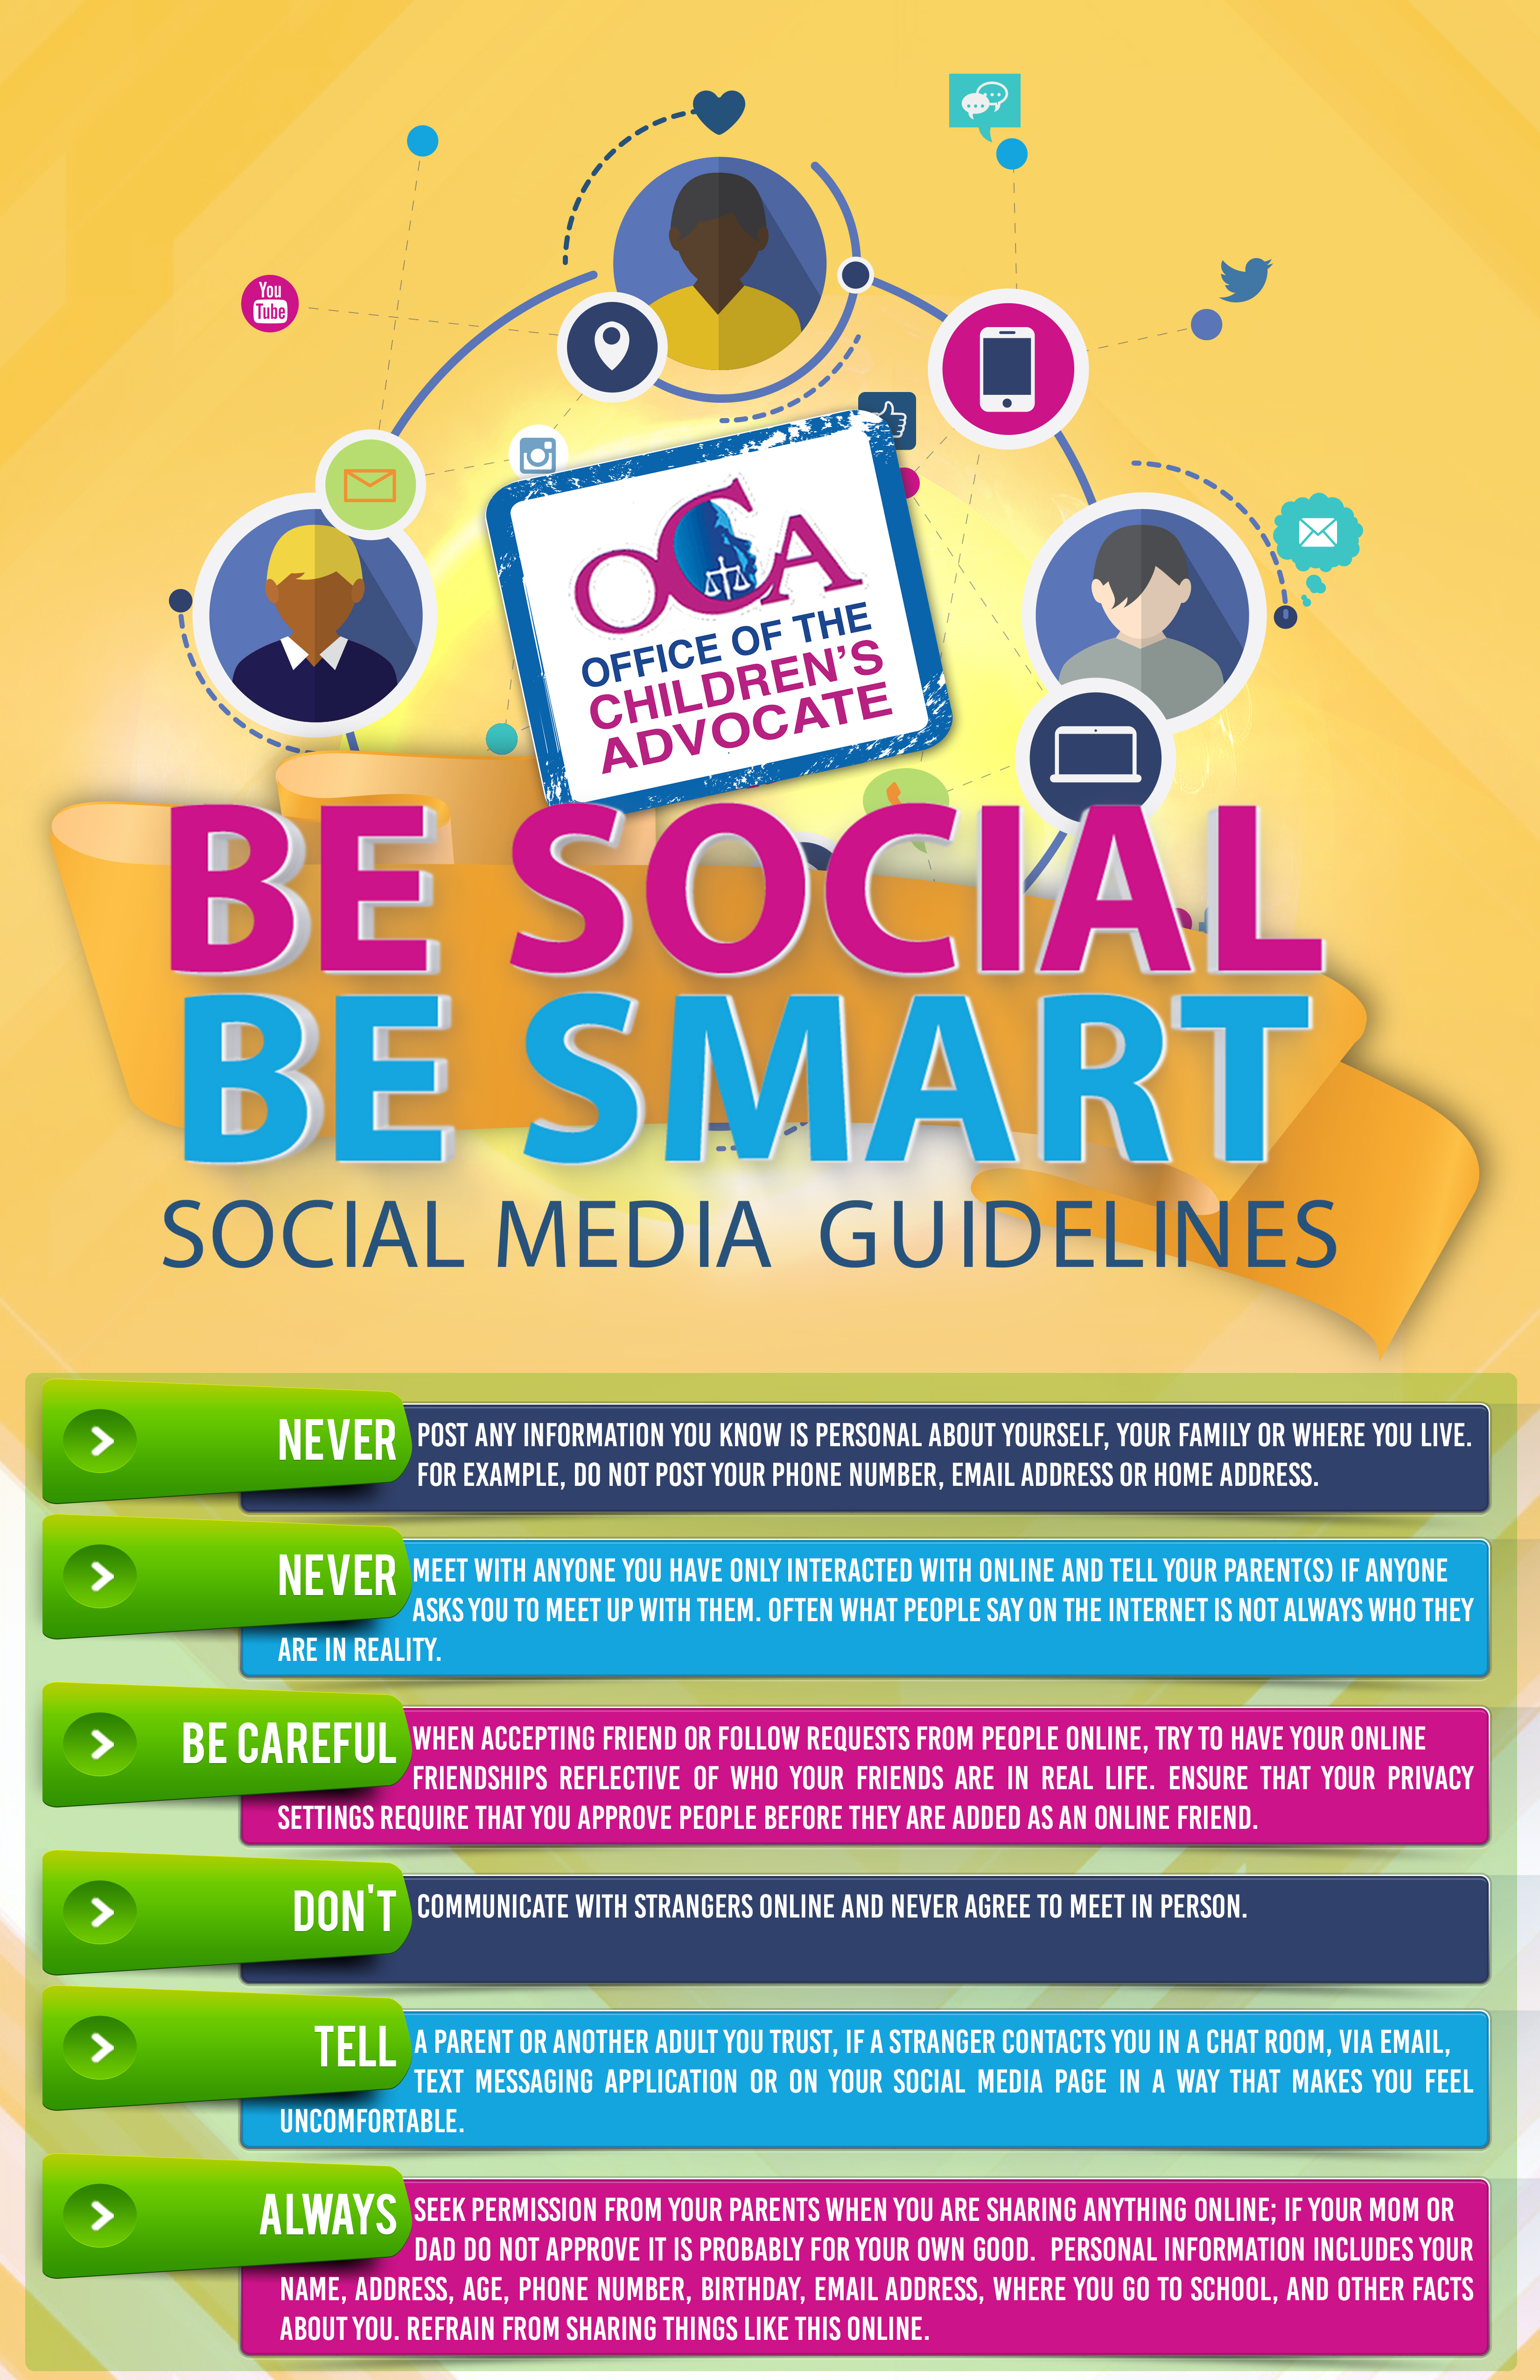 Media Guidelines For Kids Of All Ages >> Be Social Be Smart Social Media Guidelines For Youth Jamaica